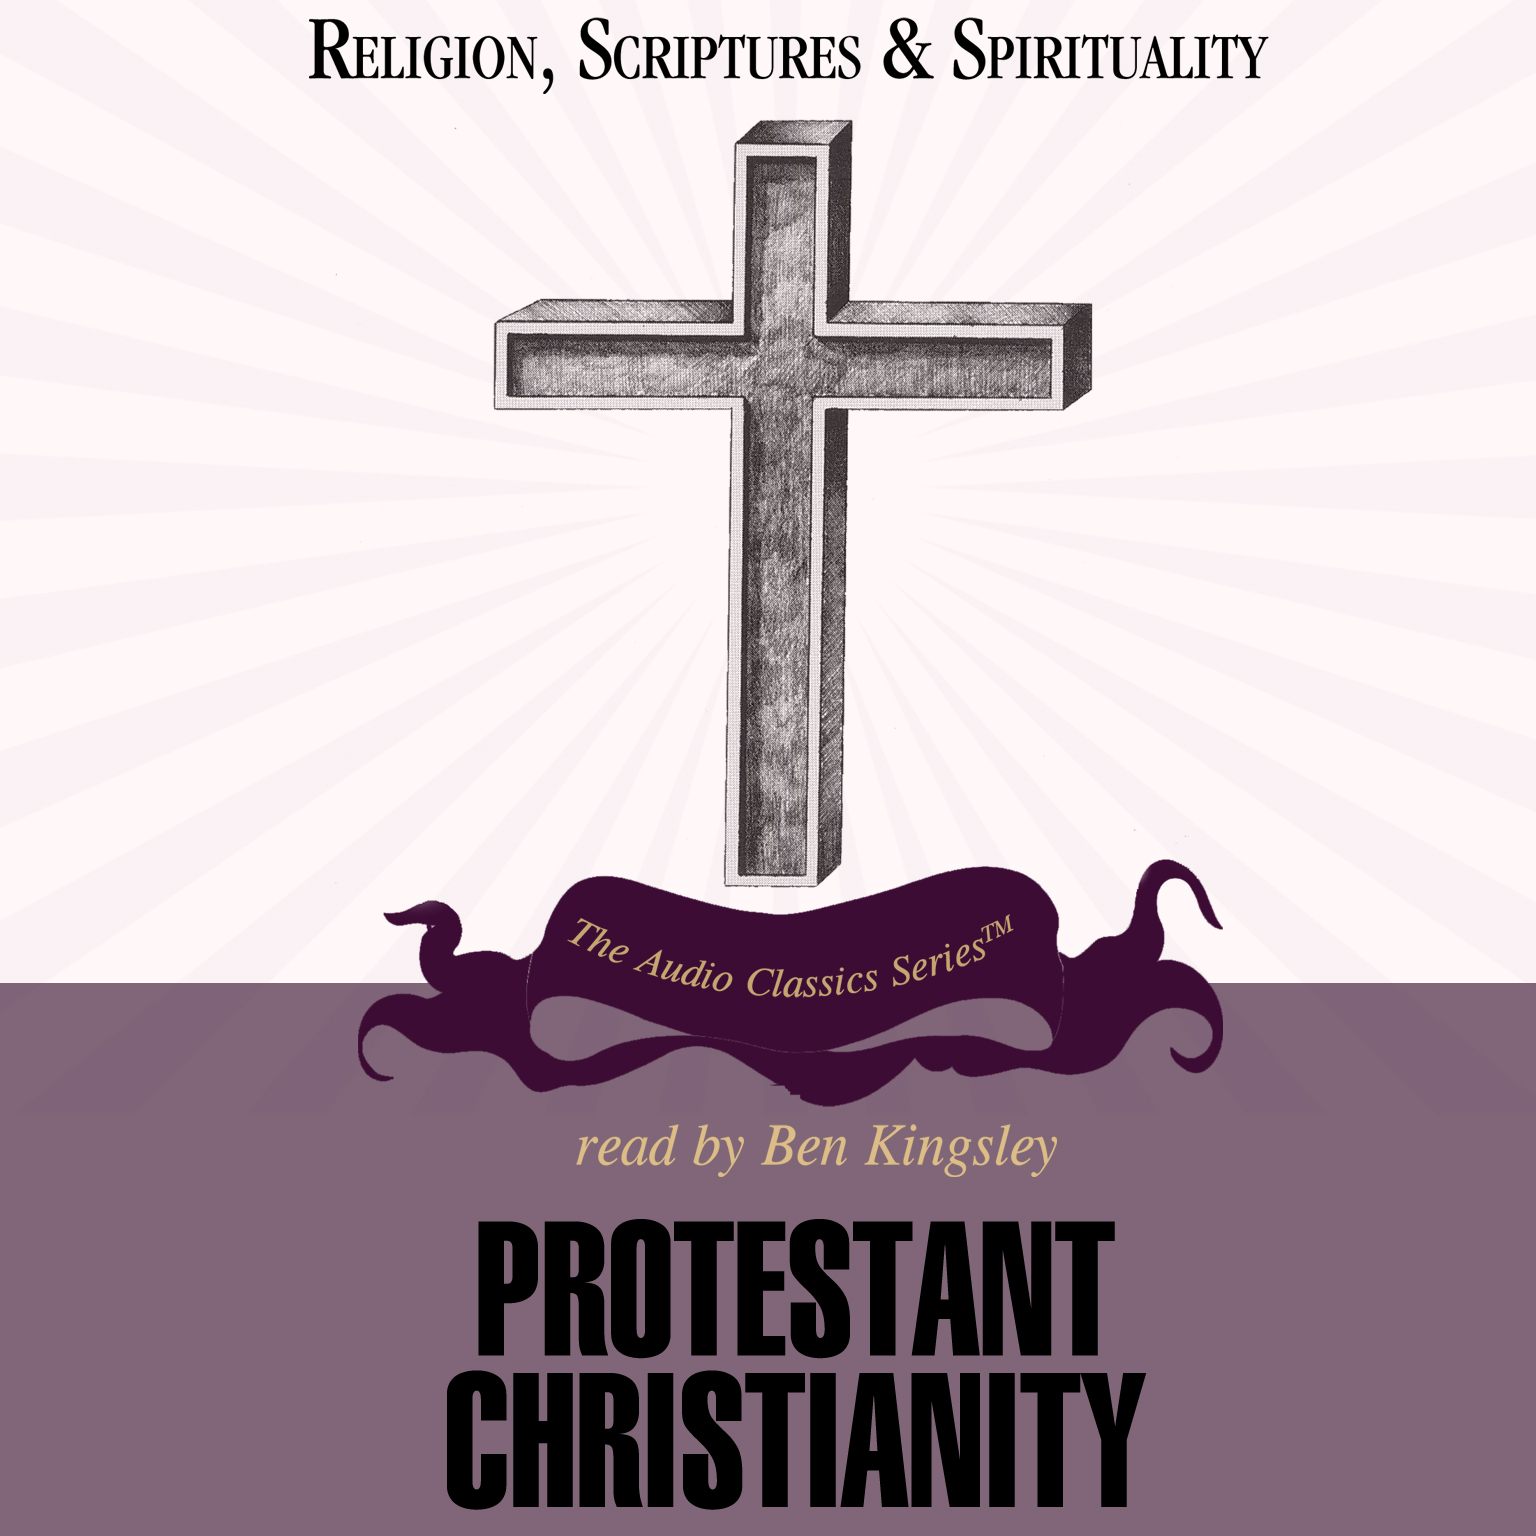 Protestant Christianity - Audiobook | Listen Instantly!